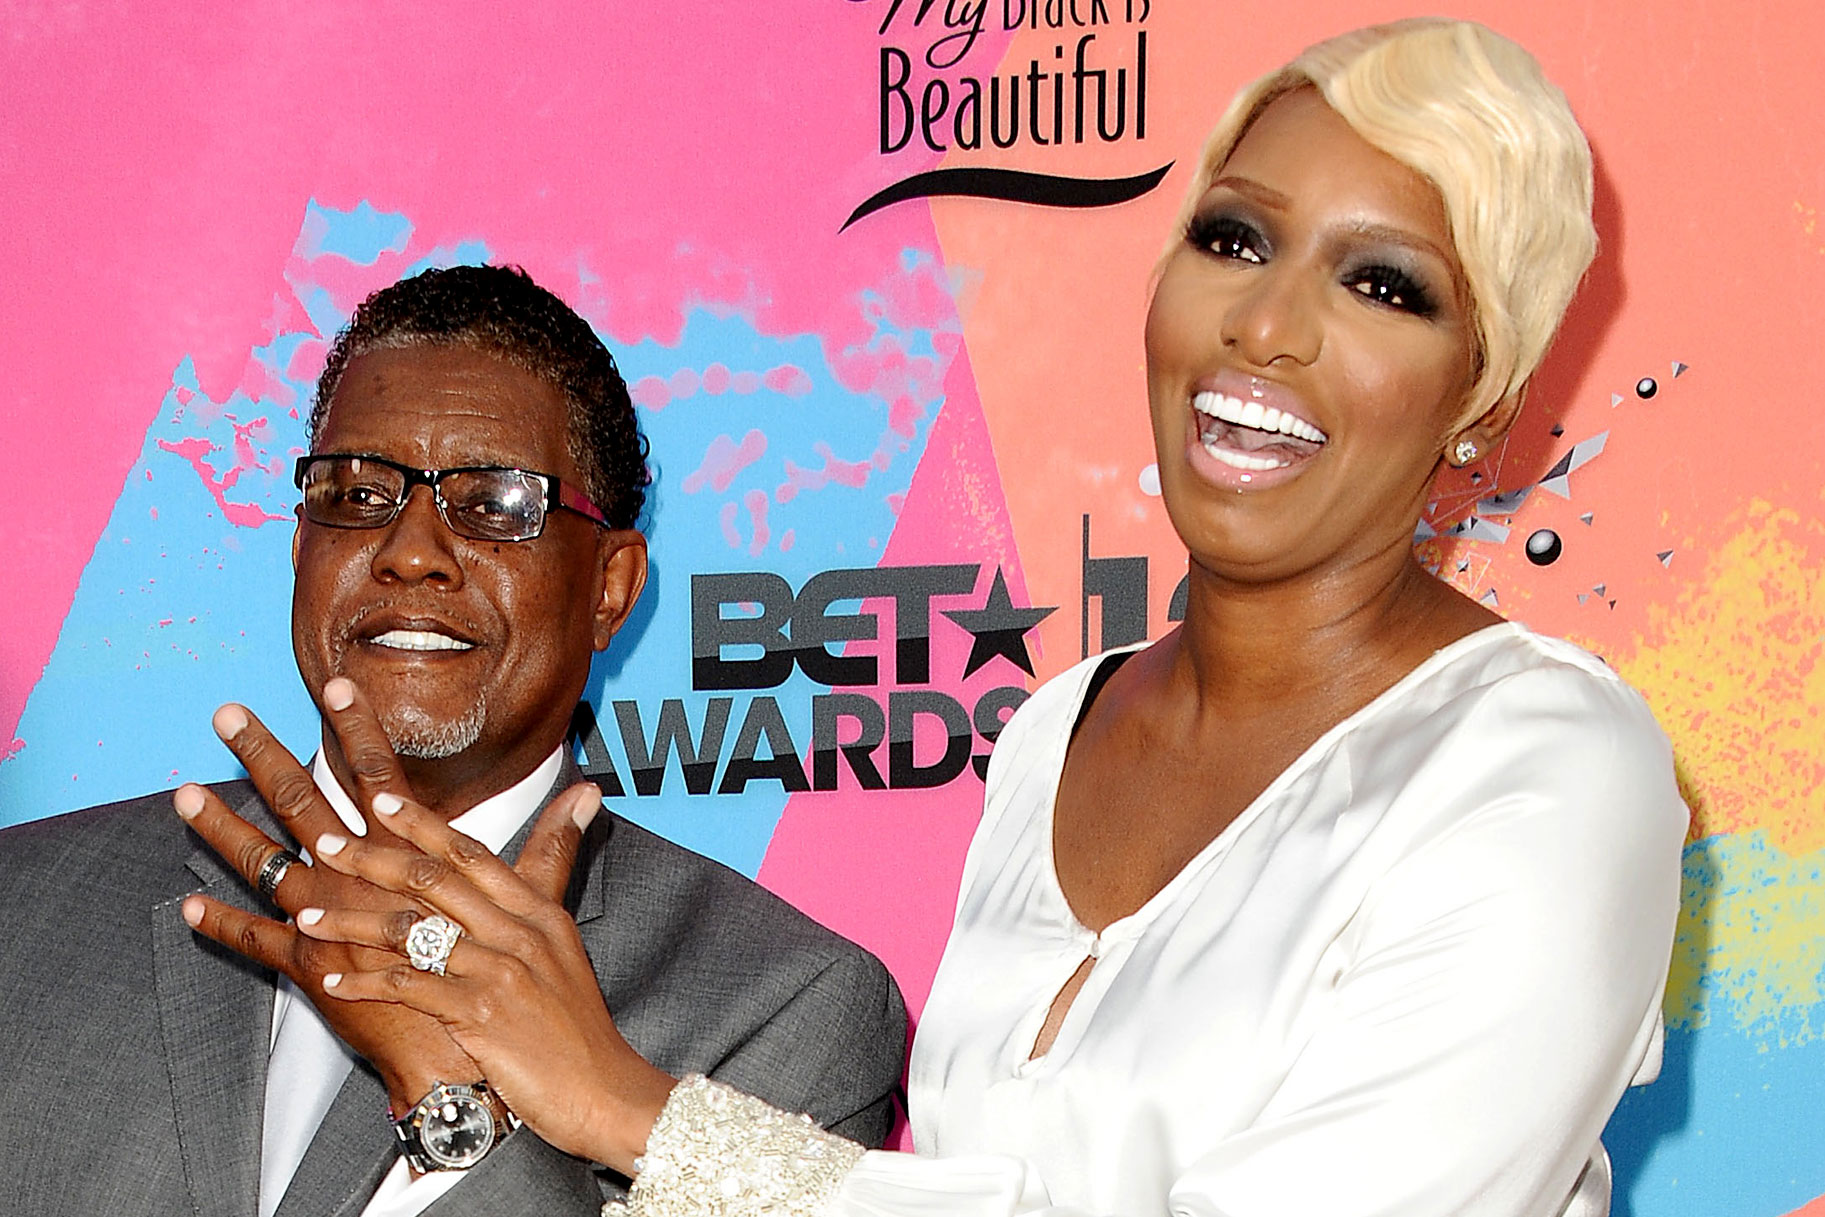 nene-leakes-gives-fans-a-sneak-peek-into-her-new-swagg-boutique-at-mgm